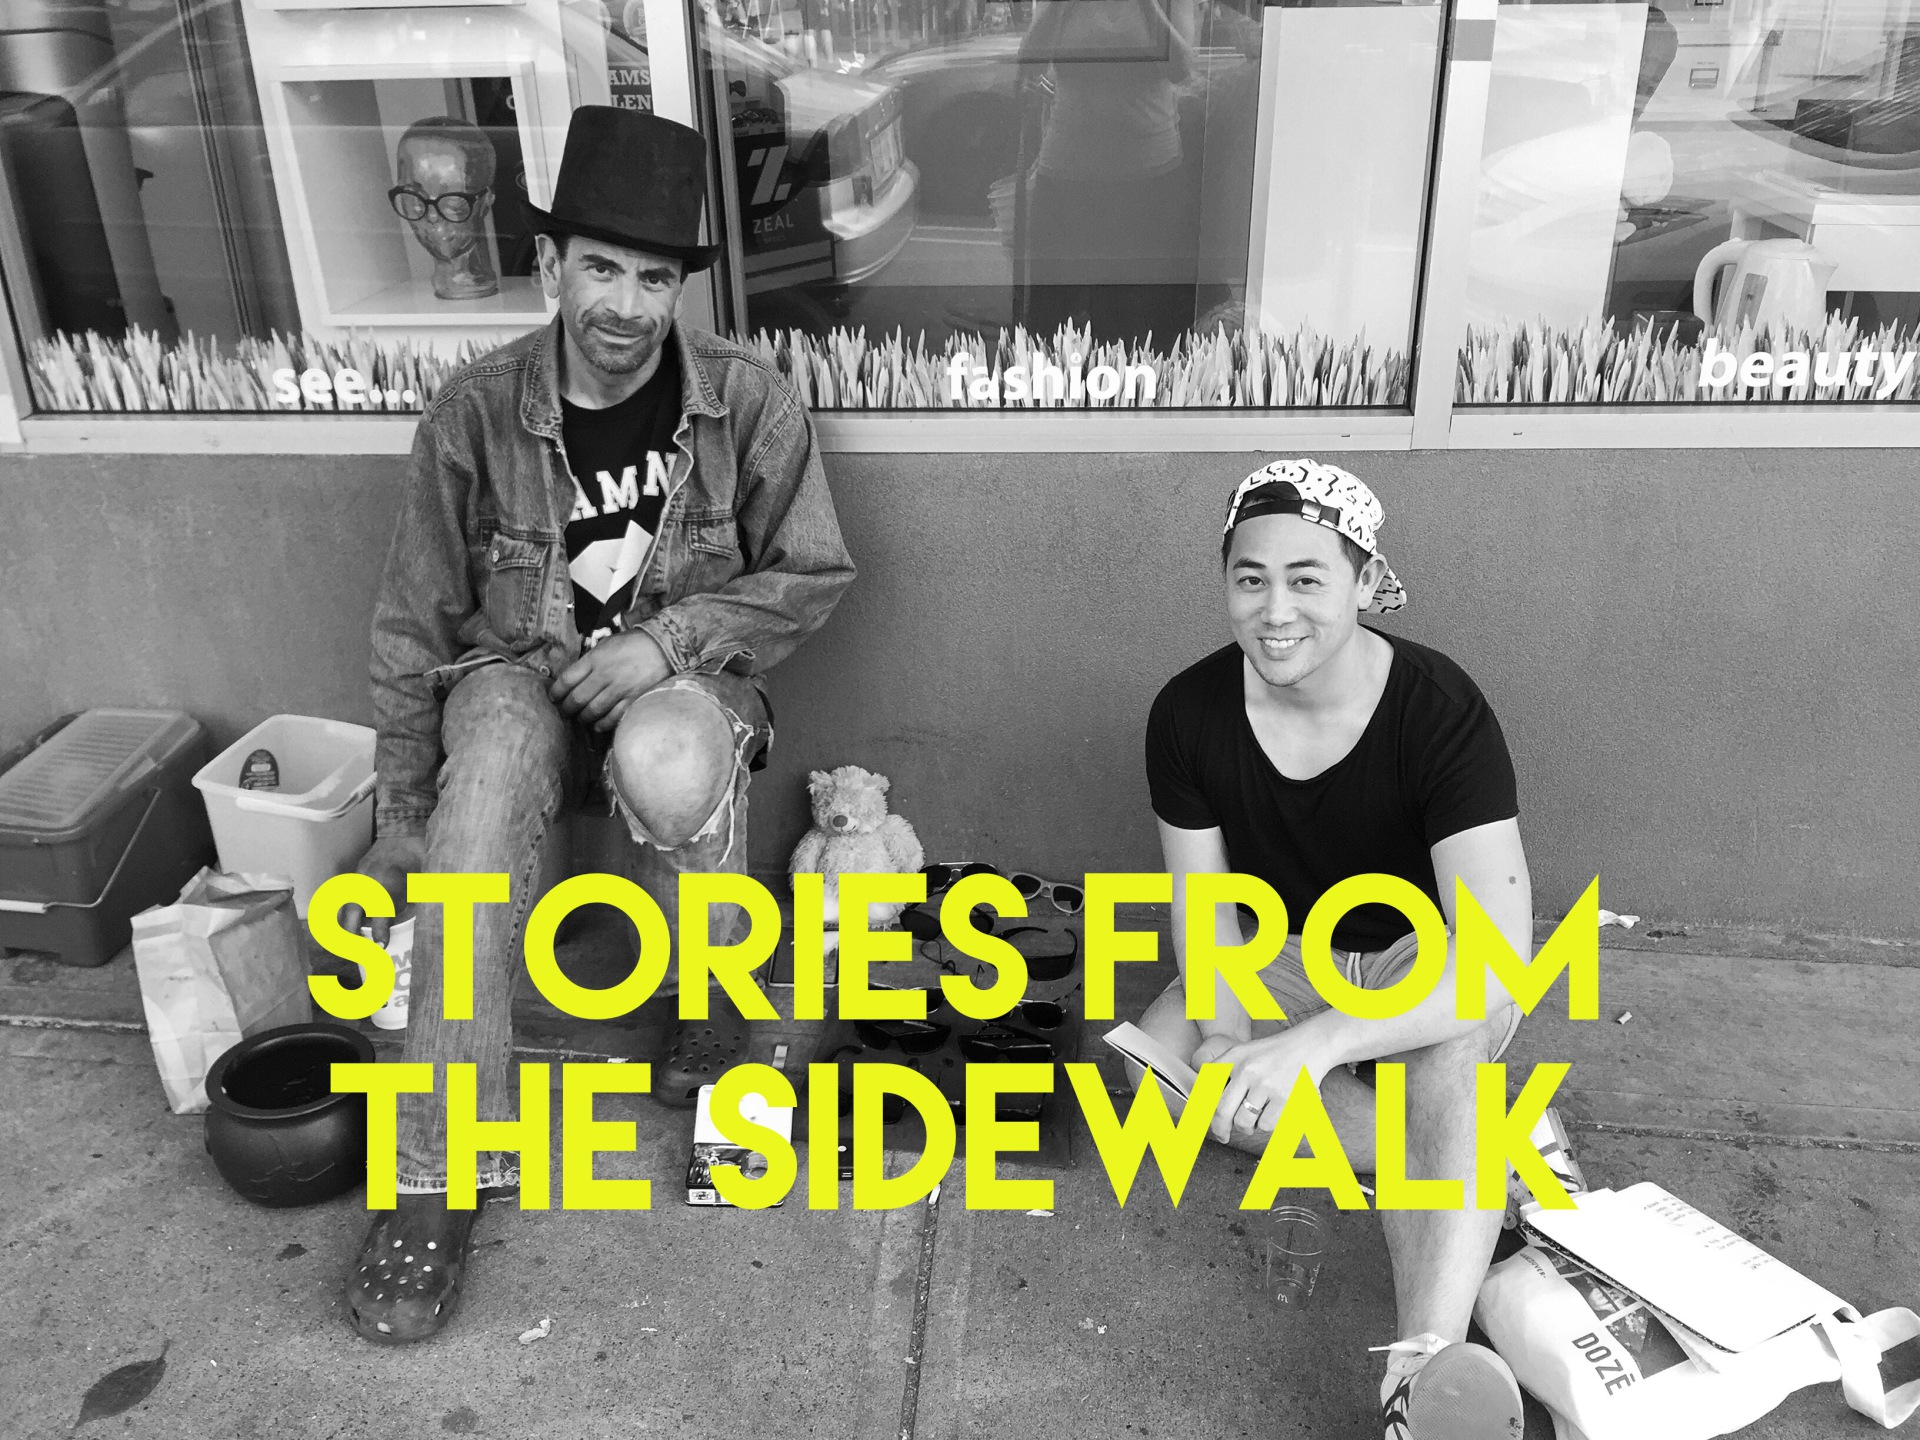 Tony (left) & Eddy (right) have a chat on the sidewalk.